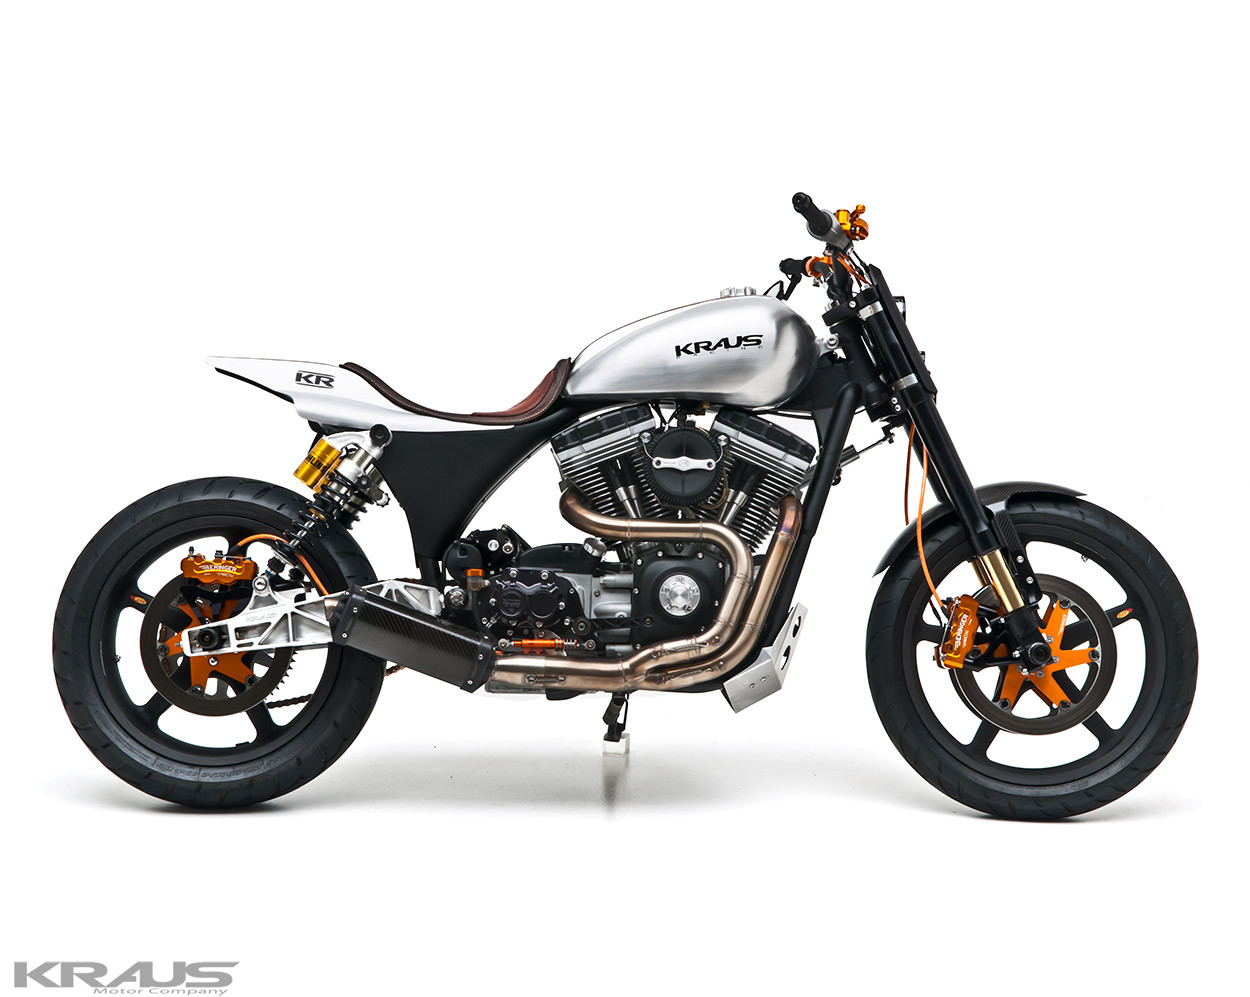 Custom Harley Davidson Dyna By Kraus: Dyna Street Tracker By Kraus Motor Co.